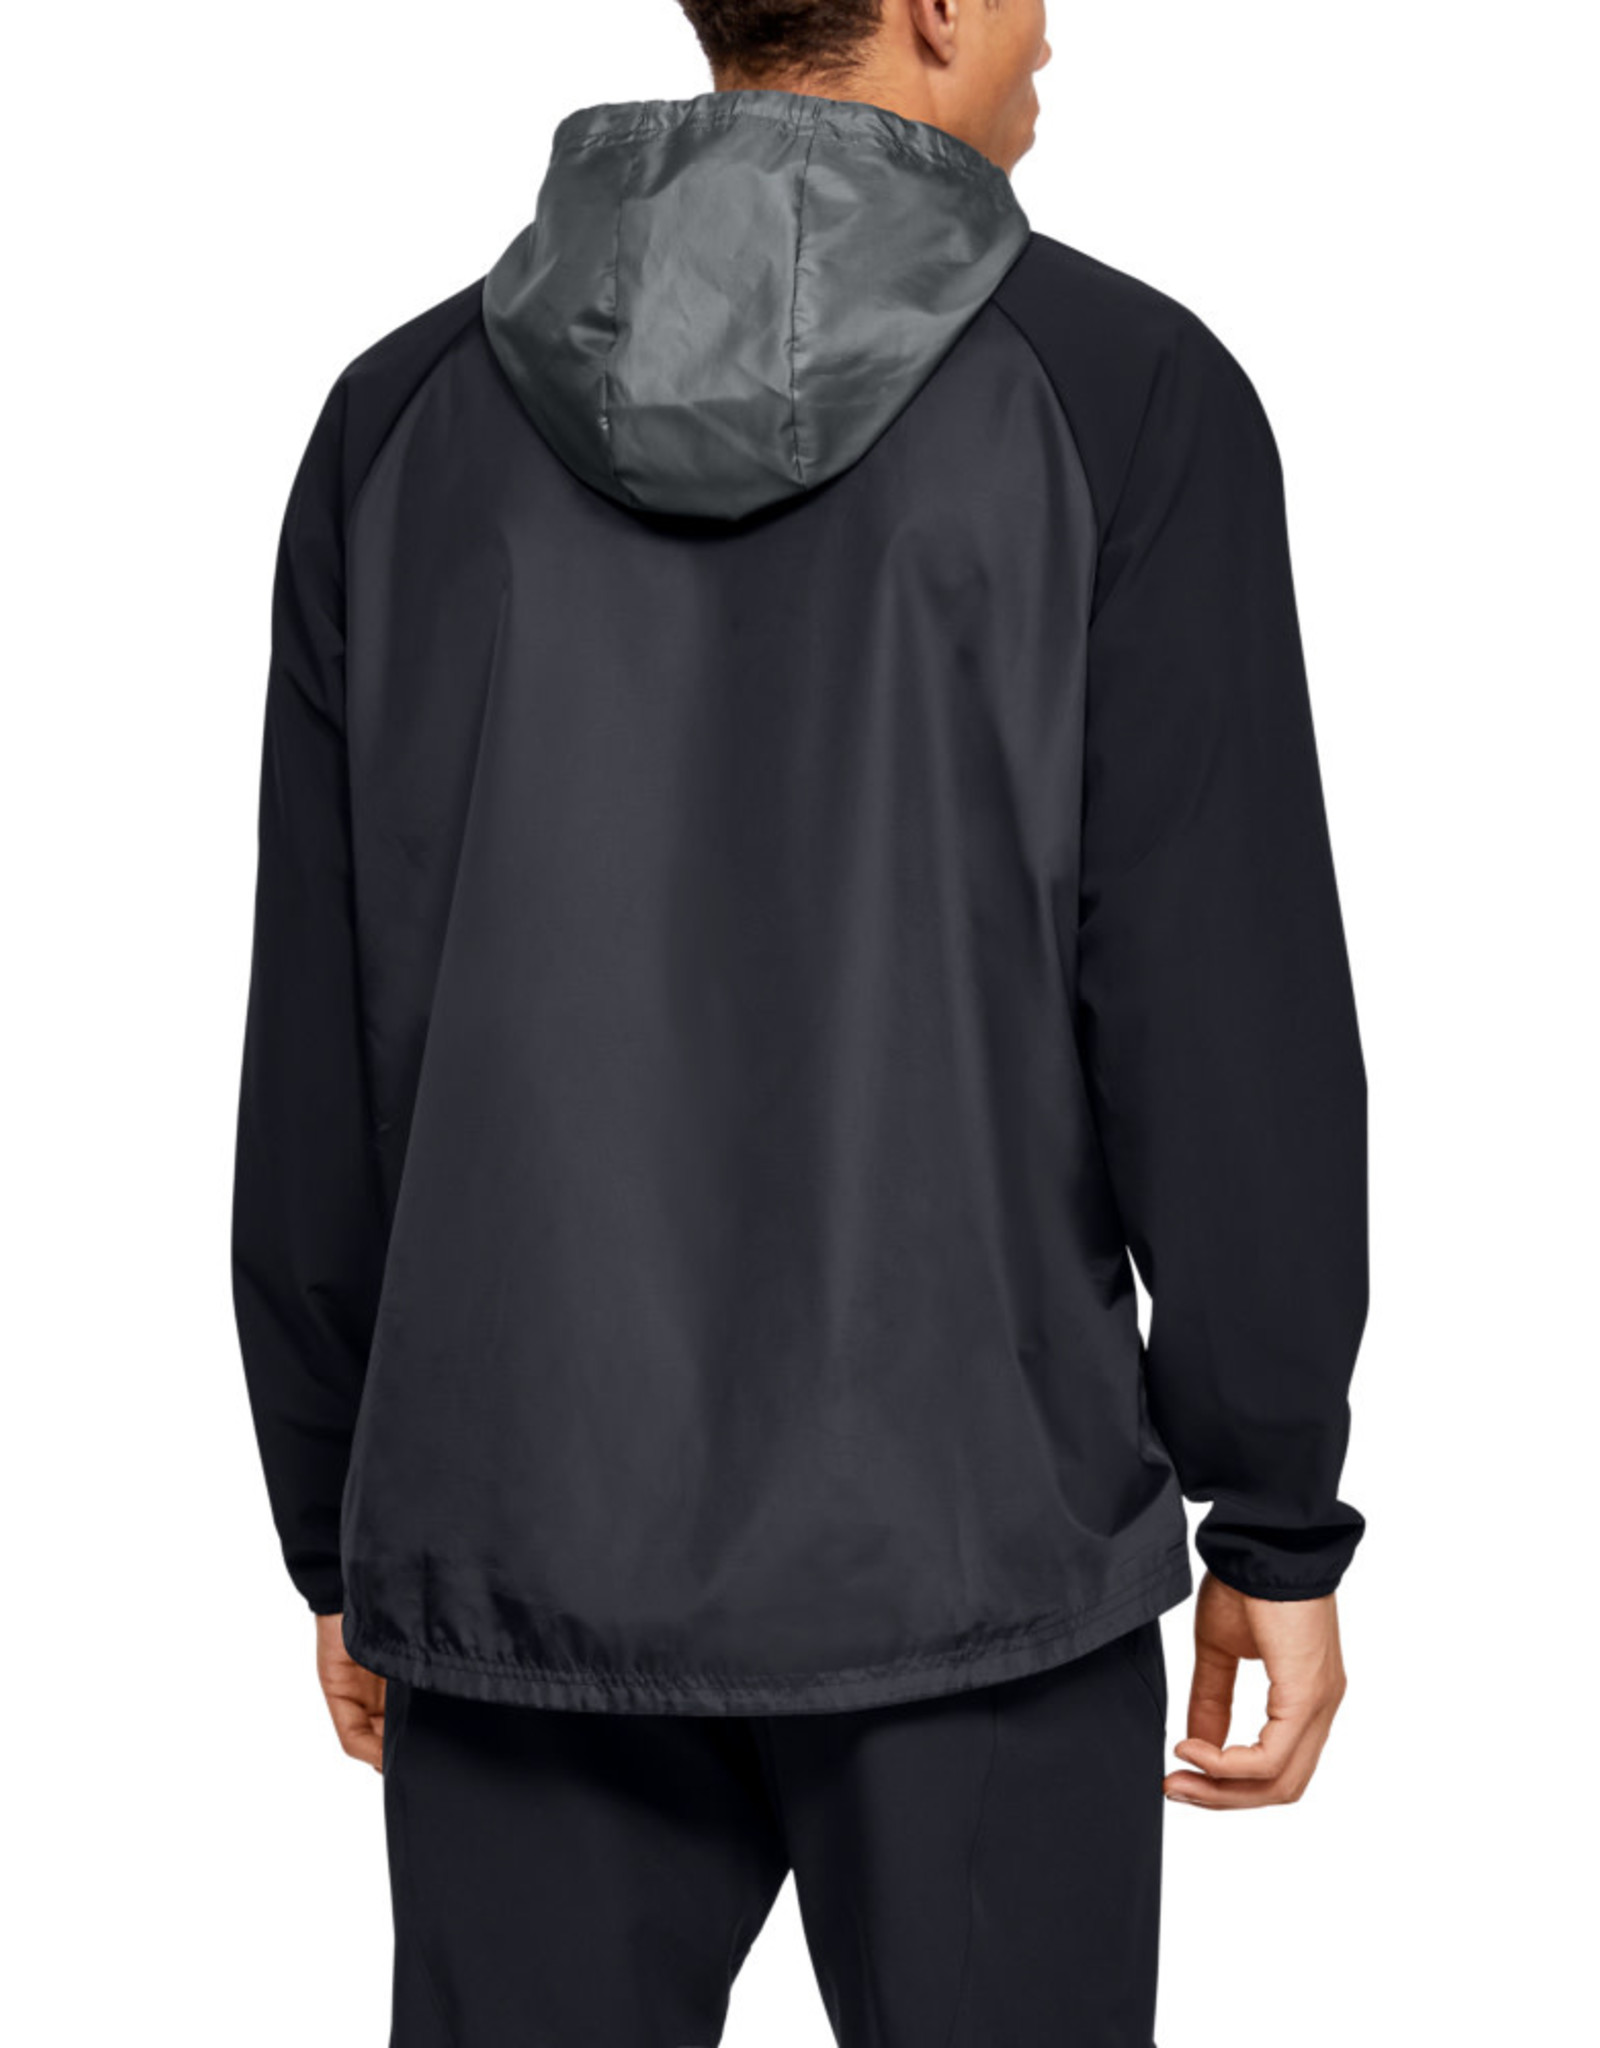 Under Armour Stretch-Woven Hooded Jacket - Black